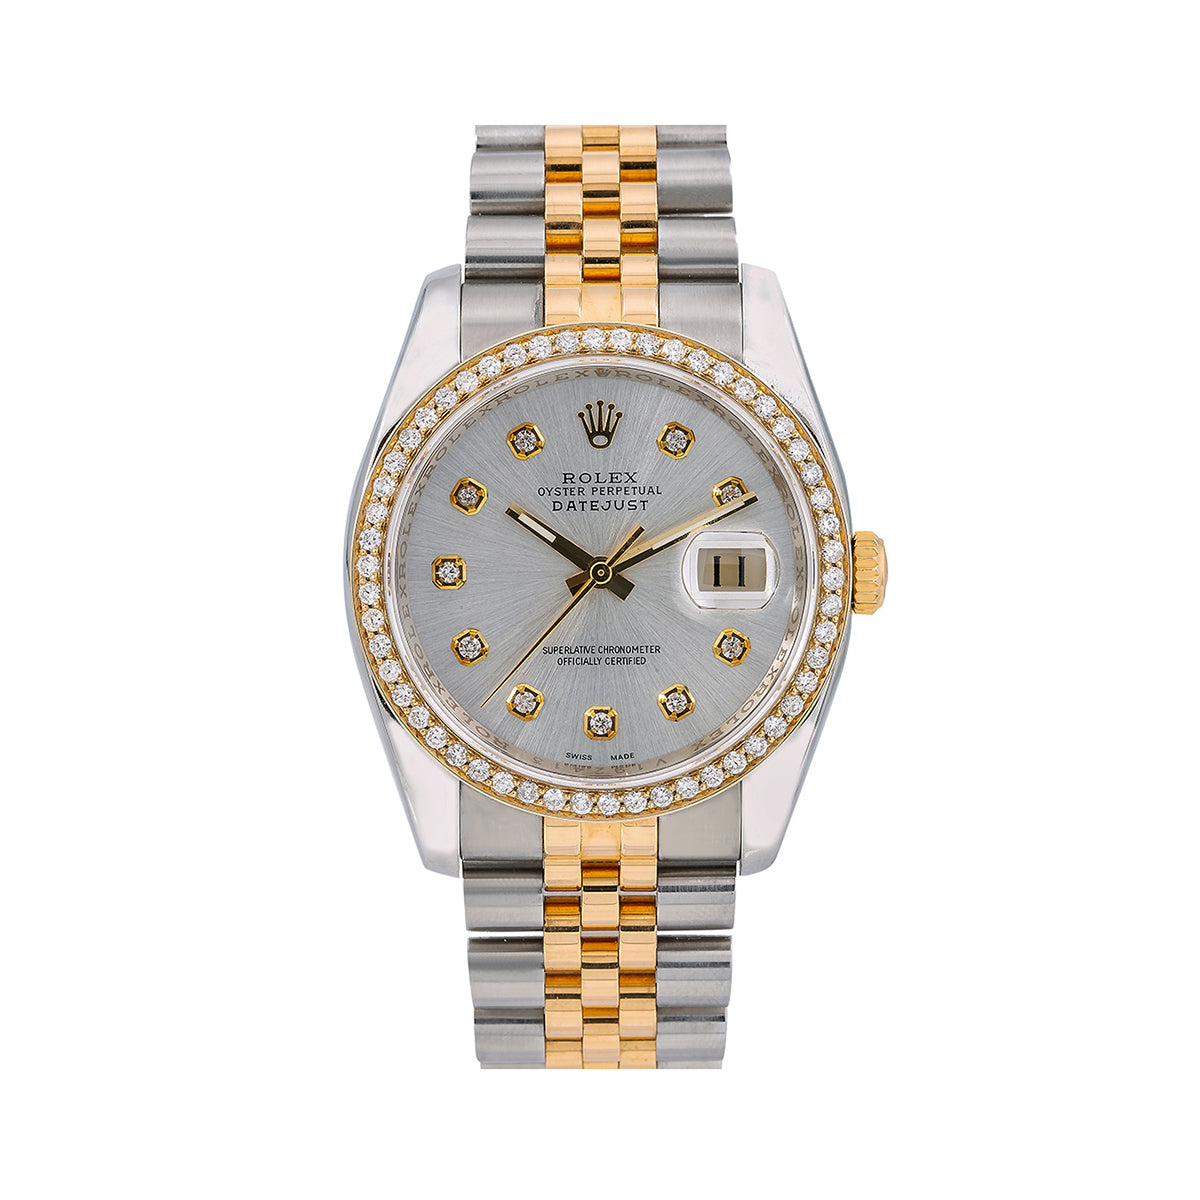 Rolex Datejust 116233 36MM Silver Mother of Pearl Dial With 1.40 CT Diamonds